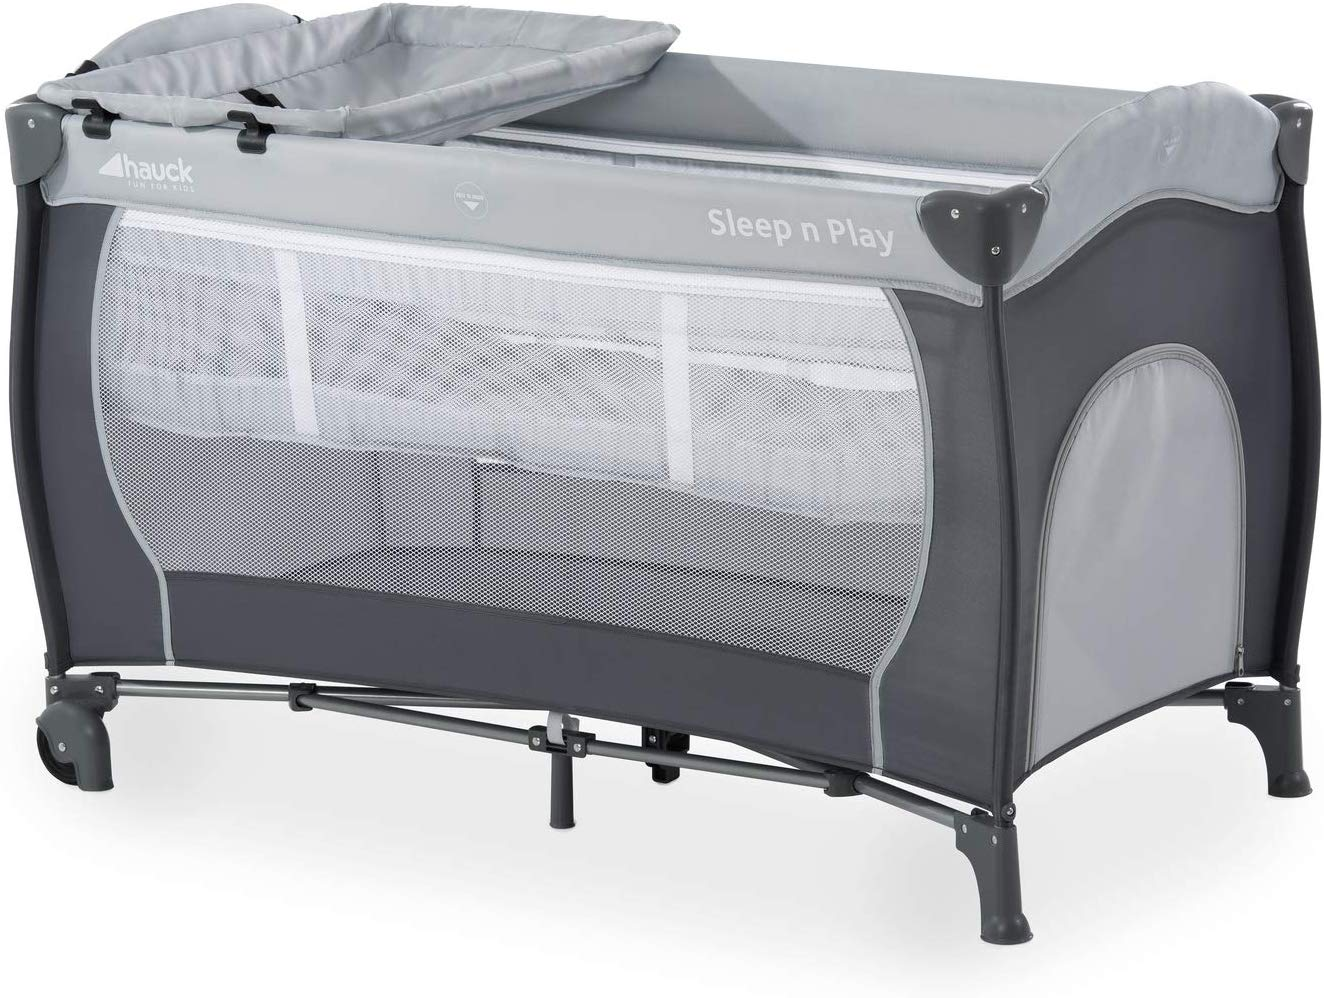 7-part folding travel cot - Hauck